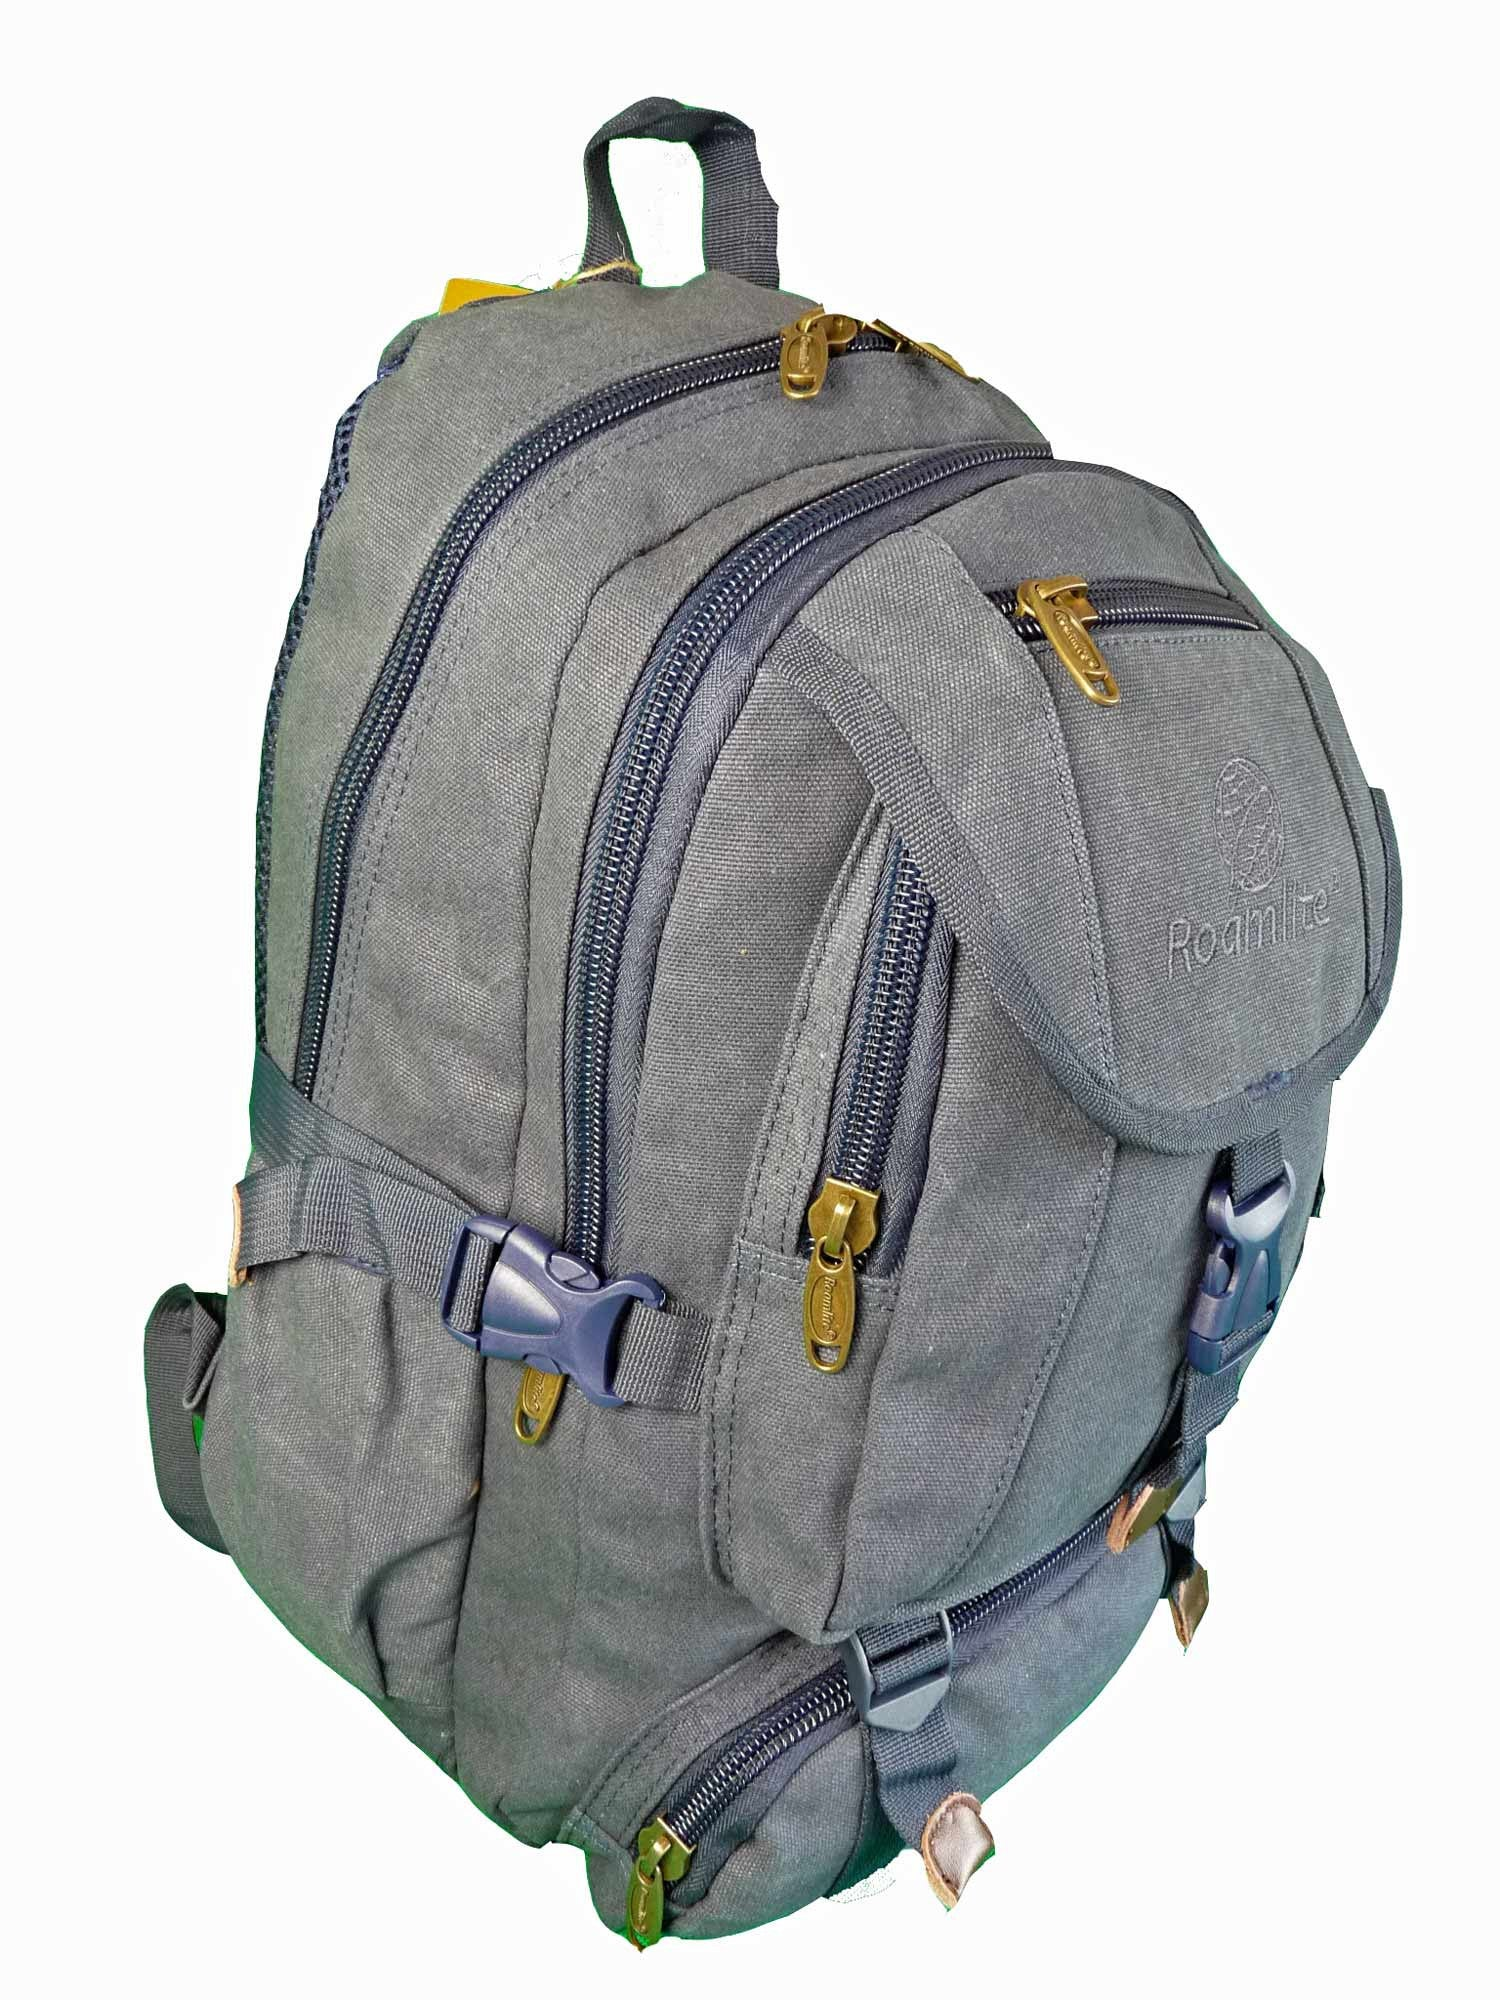 MacBook Air Backpack Rucksack Bag RL25N r side view